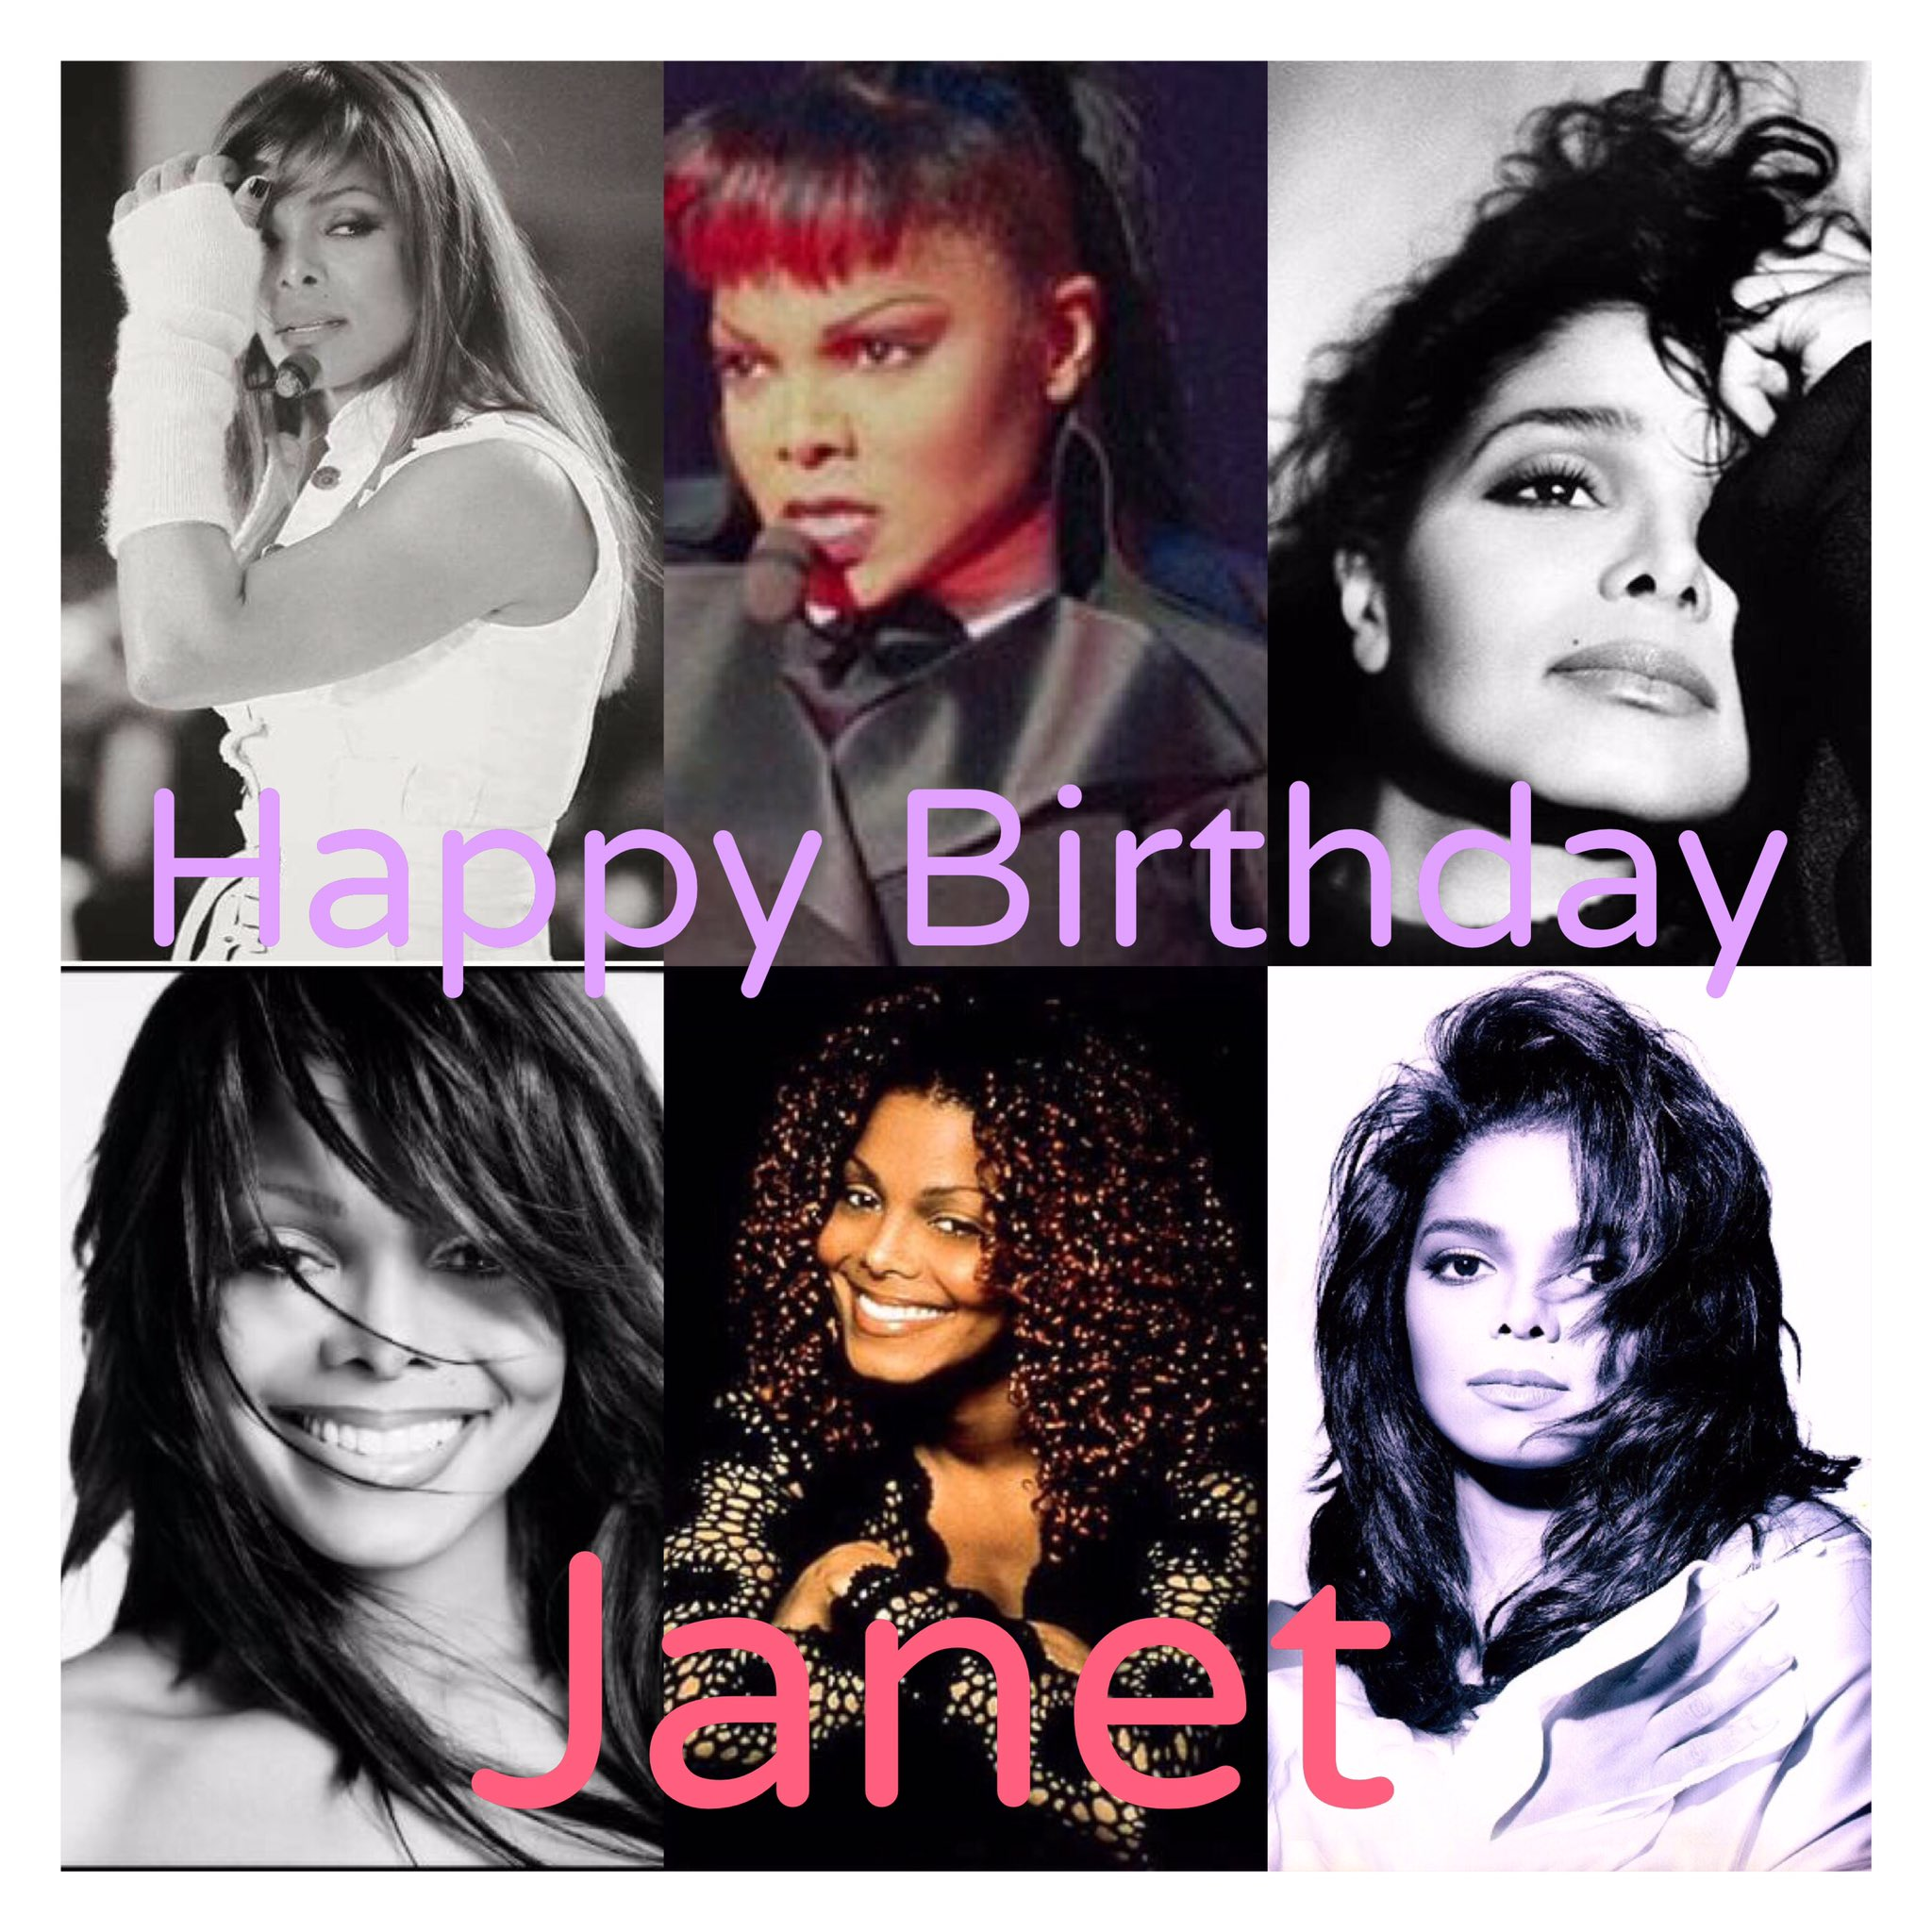 To the one and only Janet Jackson,Happy Birthday!!